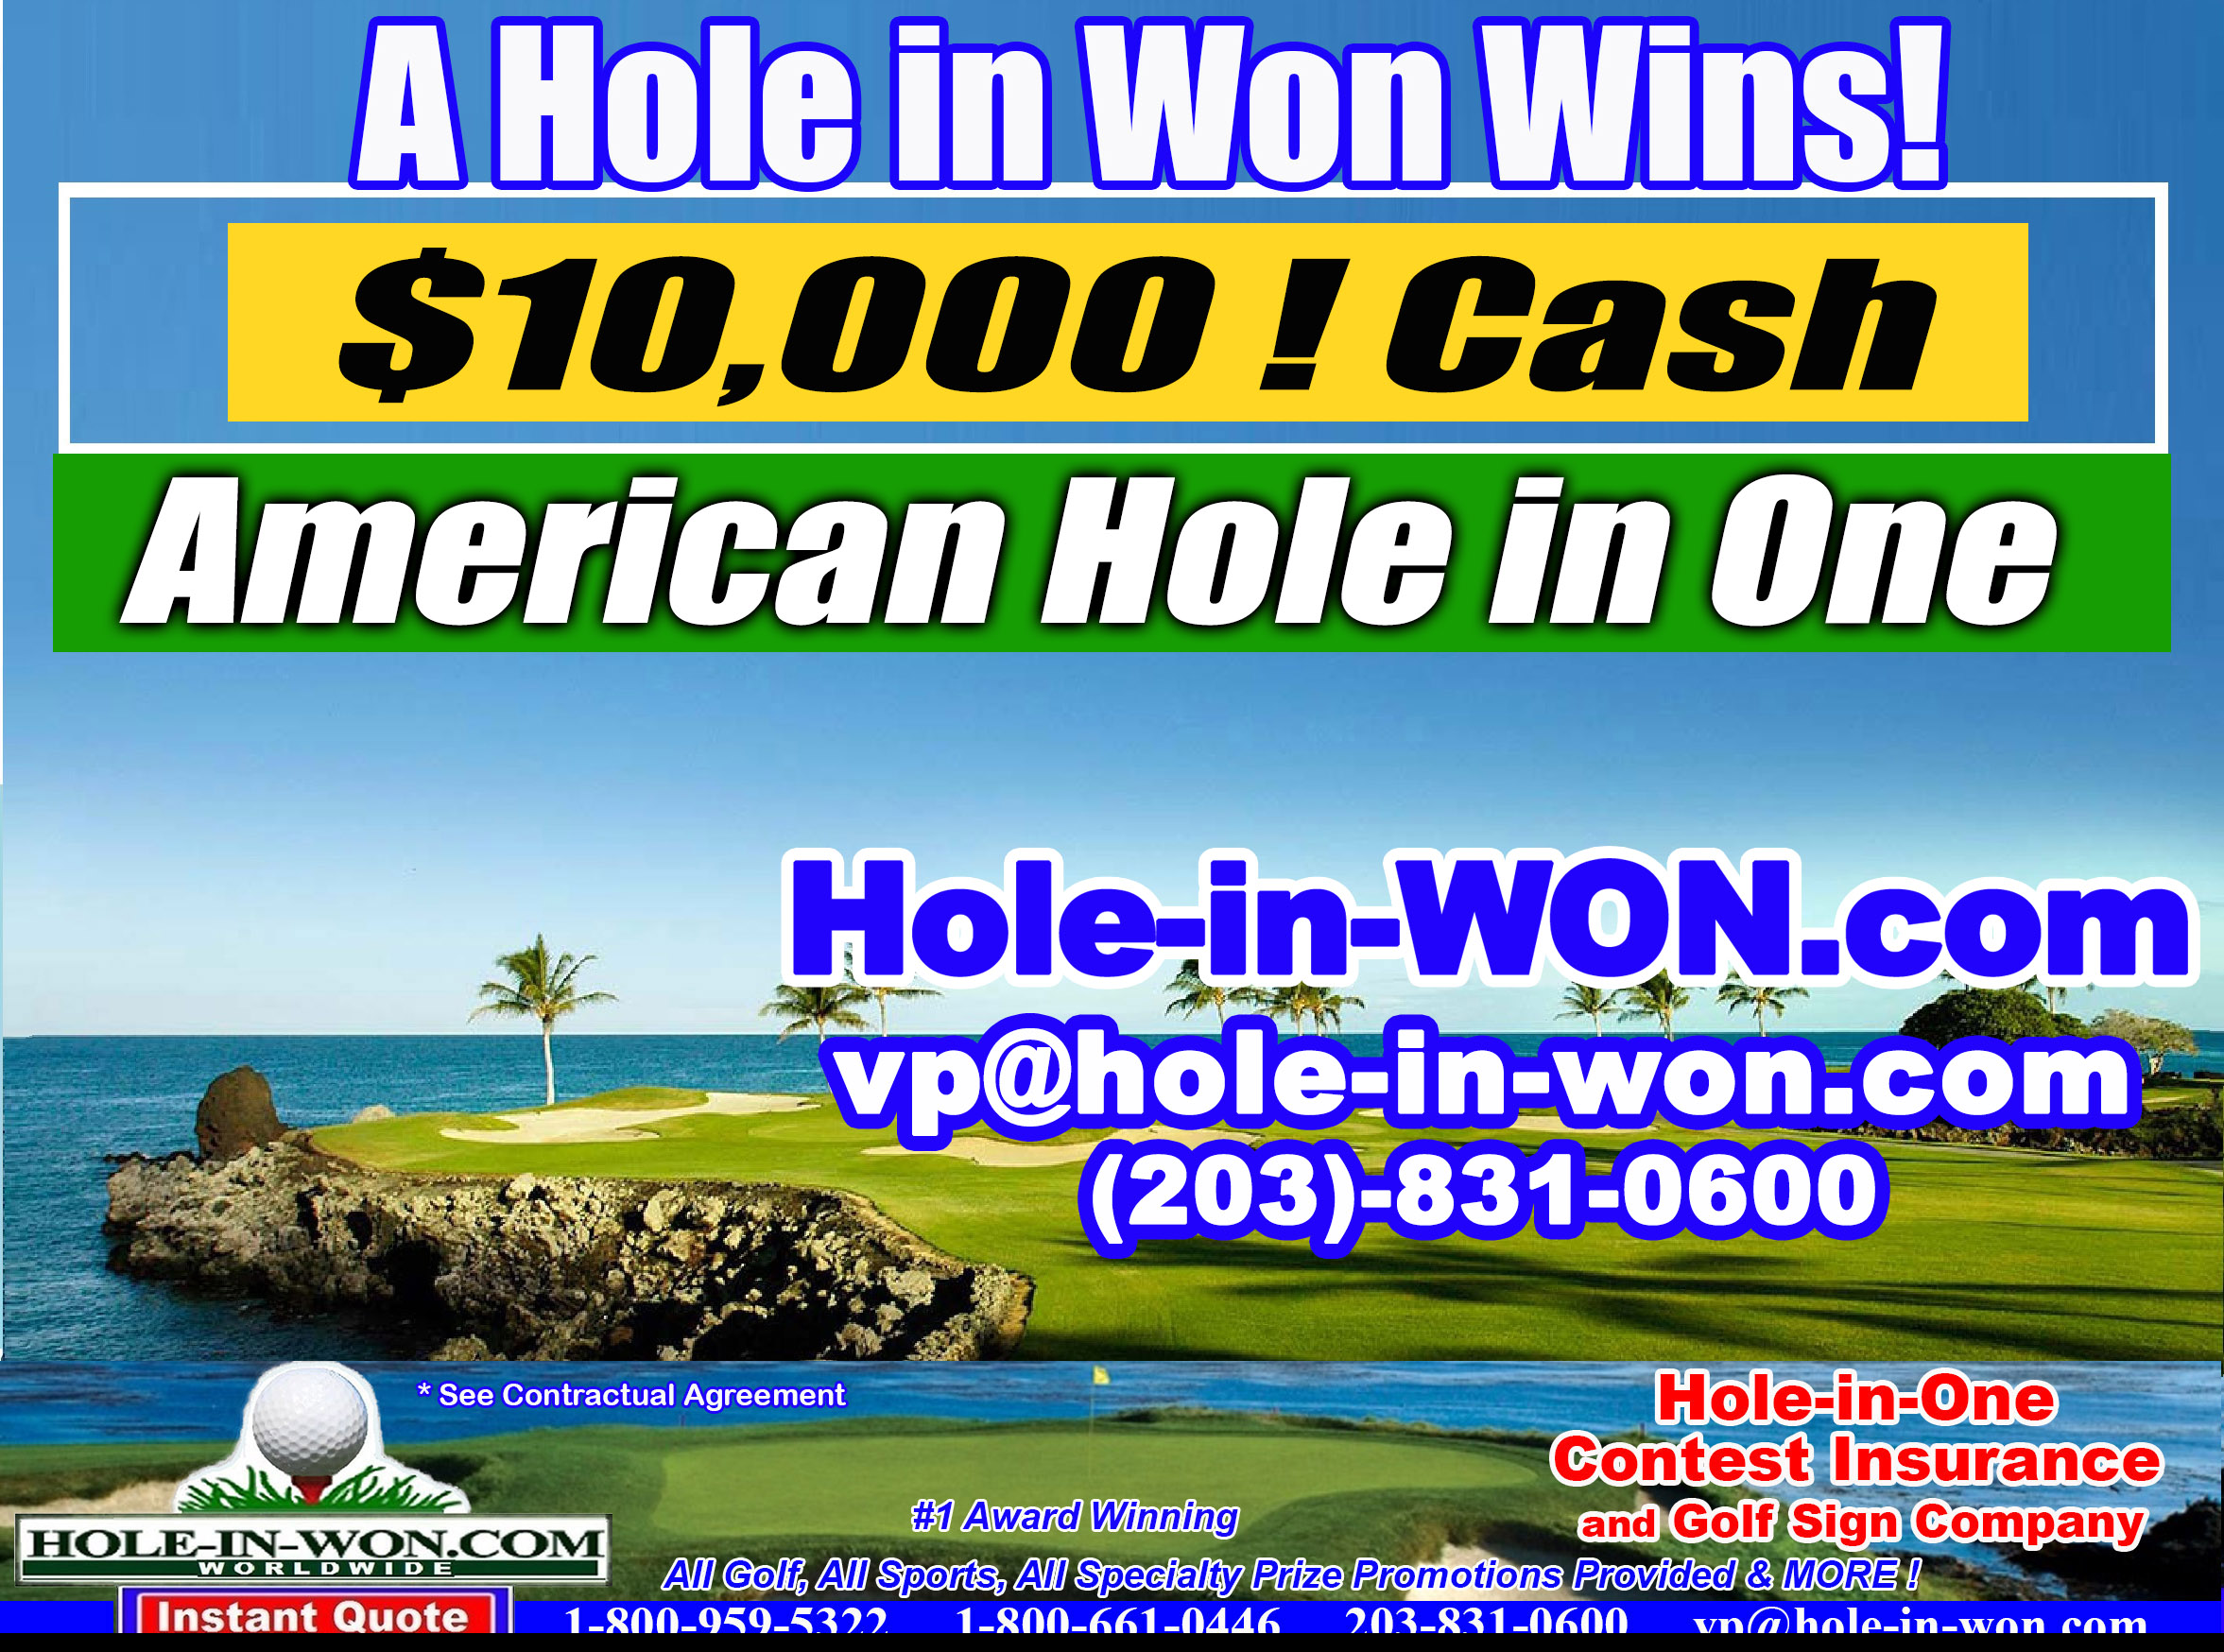 American Hole in One